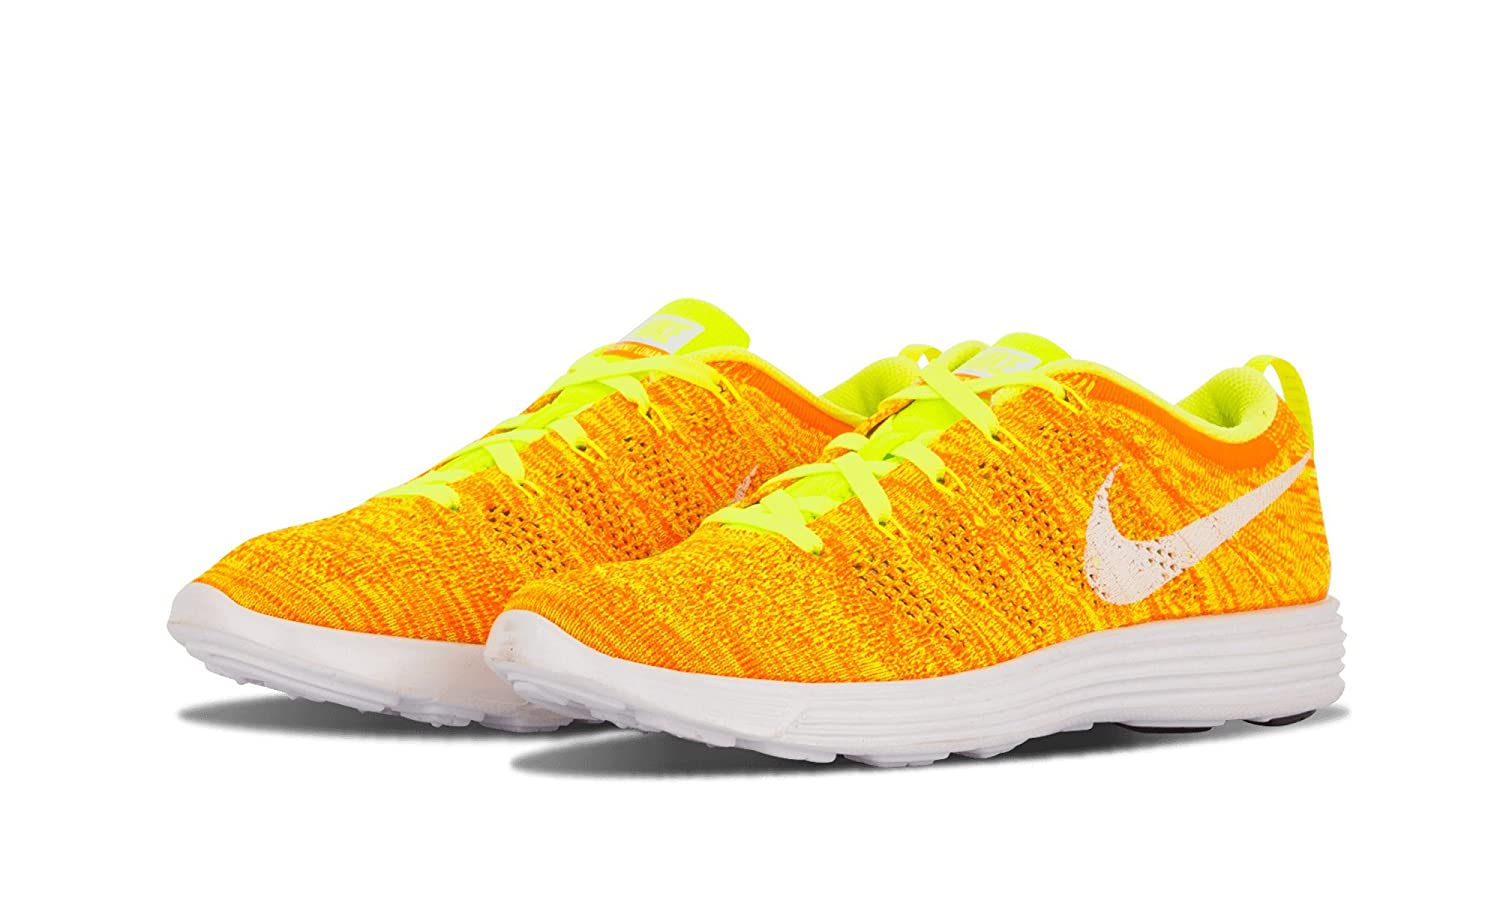 e0f30990ffcbb Amazon.com  Nike Wmns Flyknit Trainer - 7.5W - 638426 700  Shoes